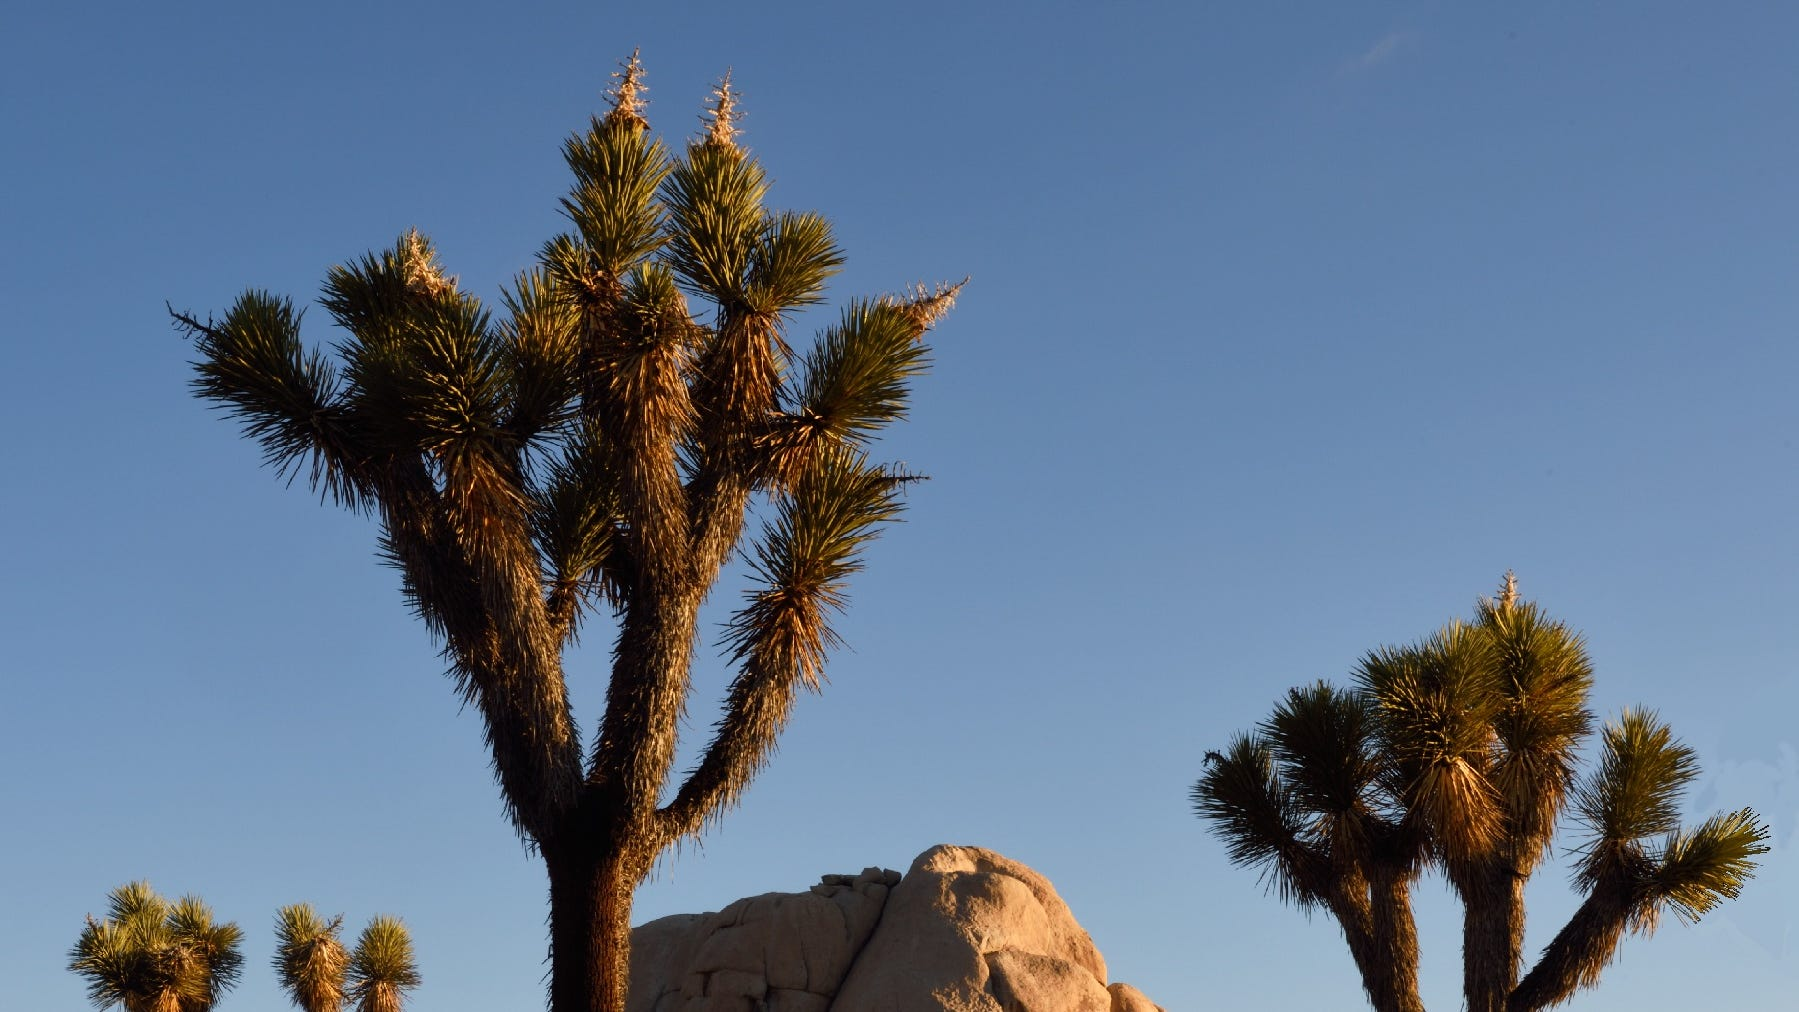 That viral photo of a cut-down Joshua tree? The damage was pre-shutdown, experts say